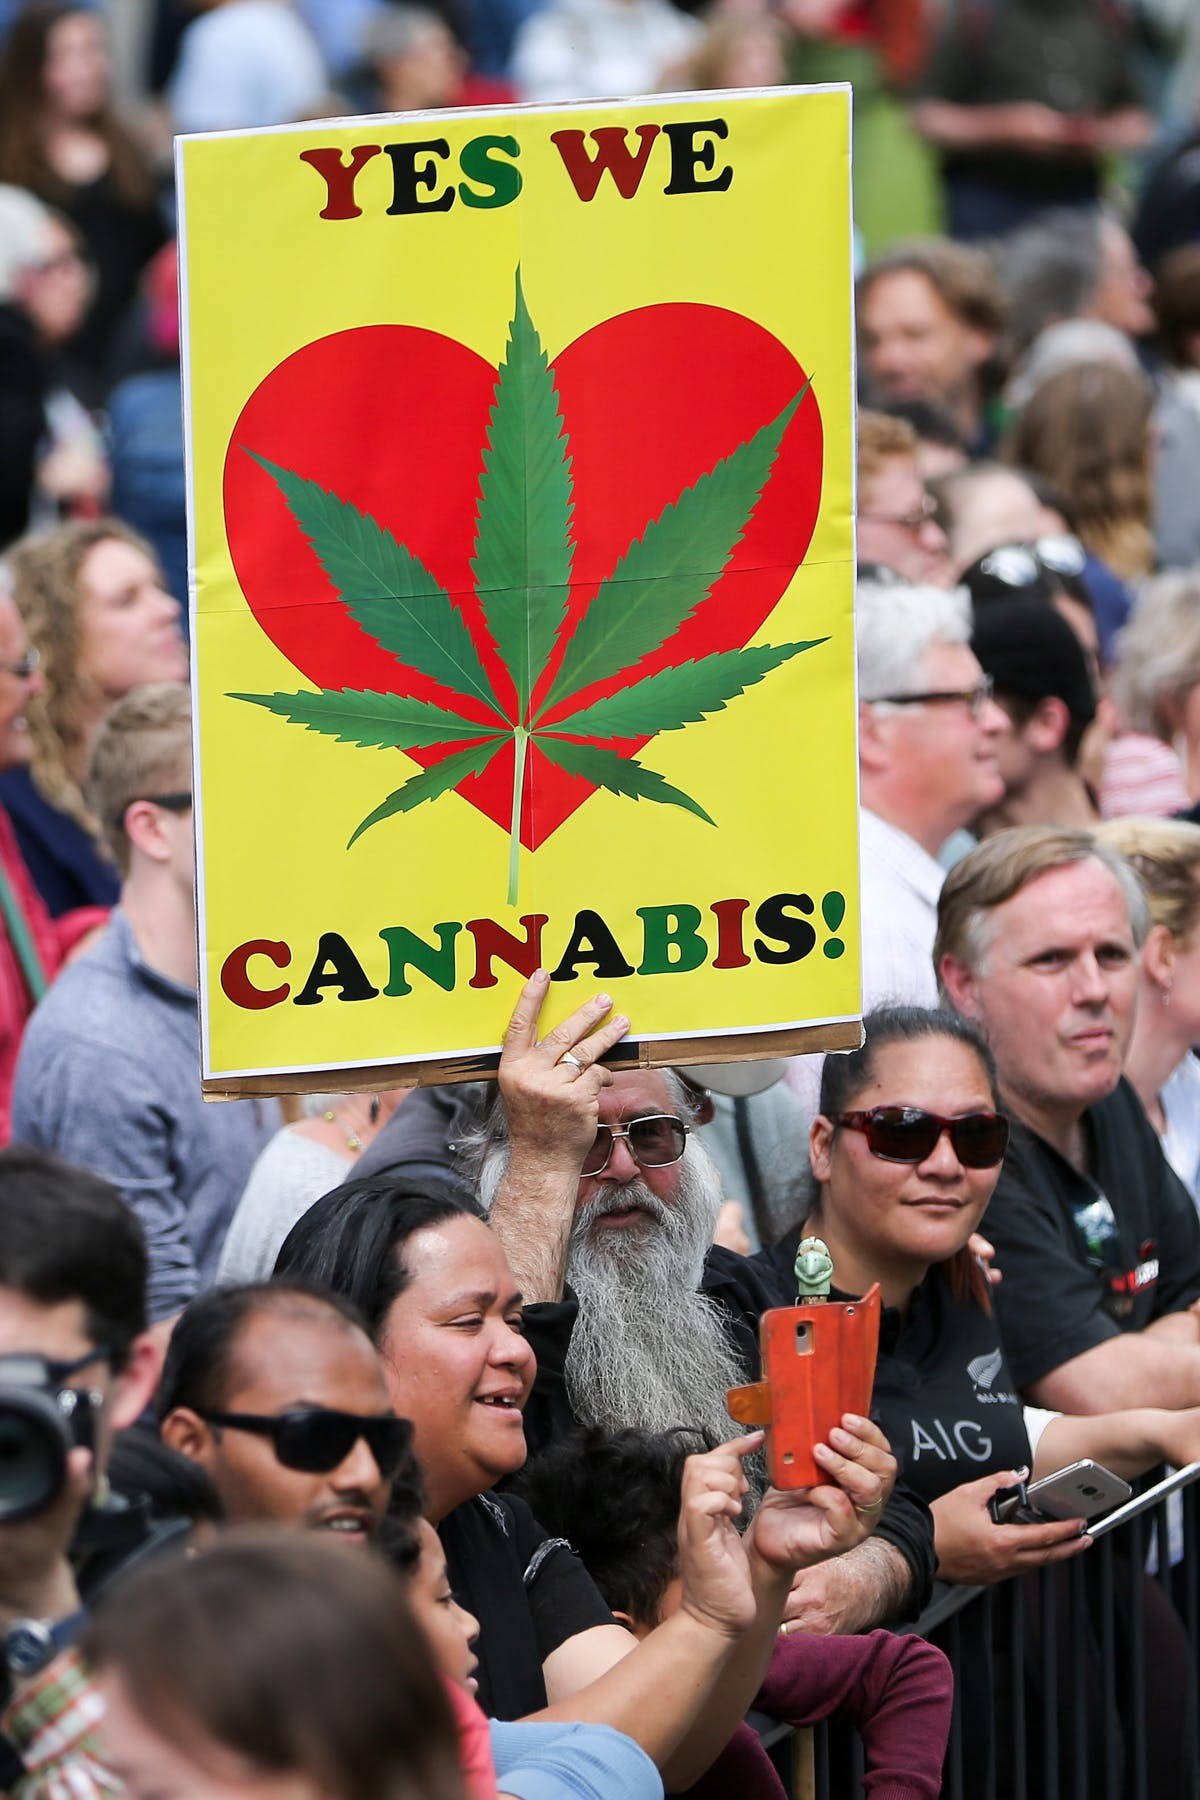 New Zealand may legalize recreational cannabis 2 of 2 Grab your weed, grab your snacks, theres going to be a Lord Of The Rings TV series